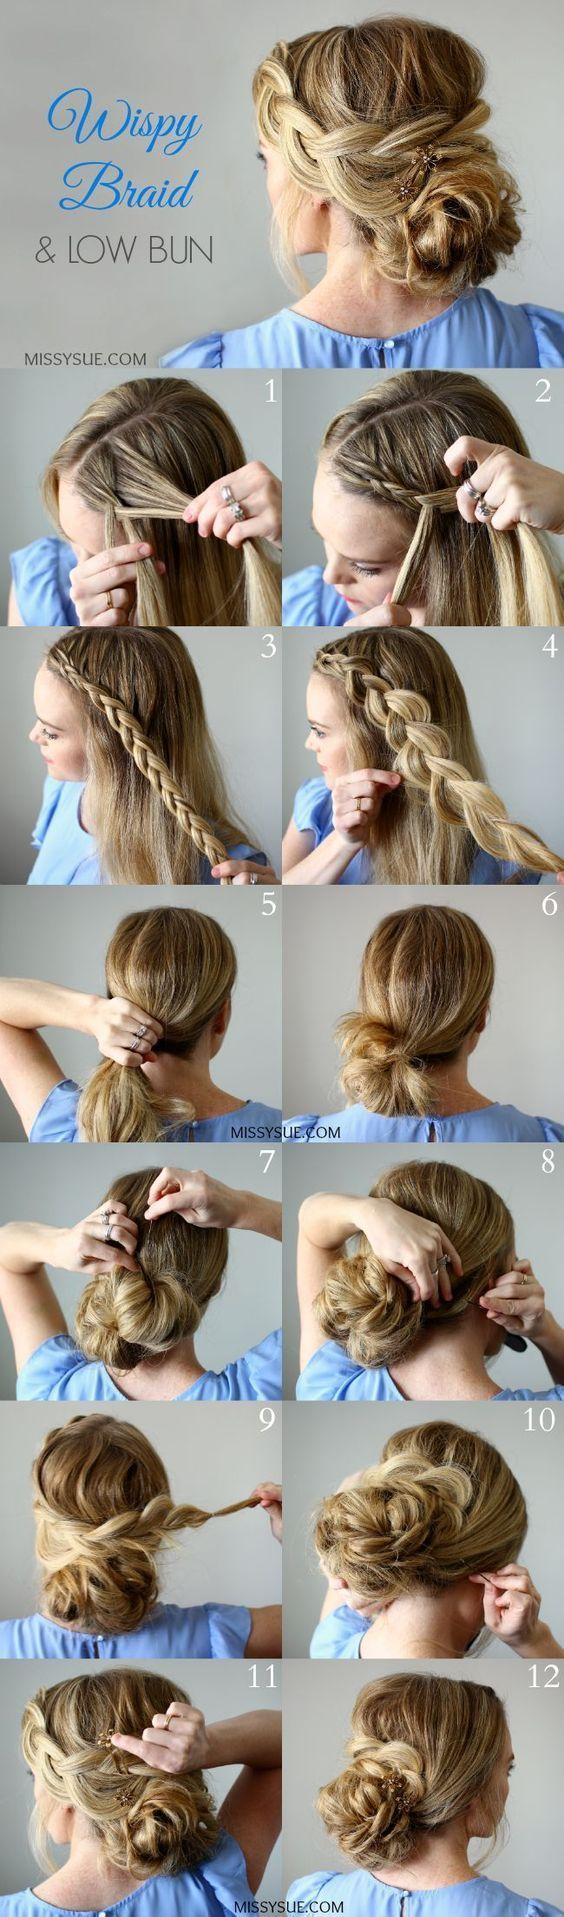 25 Step By Step Tutorial For Beautiful Hair Updos ❤ - Page 4 of 5 - Trend To Wear: